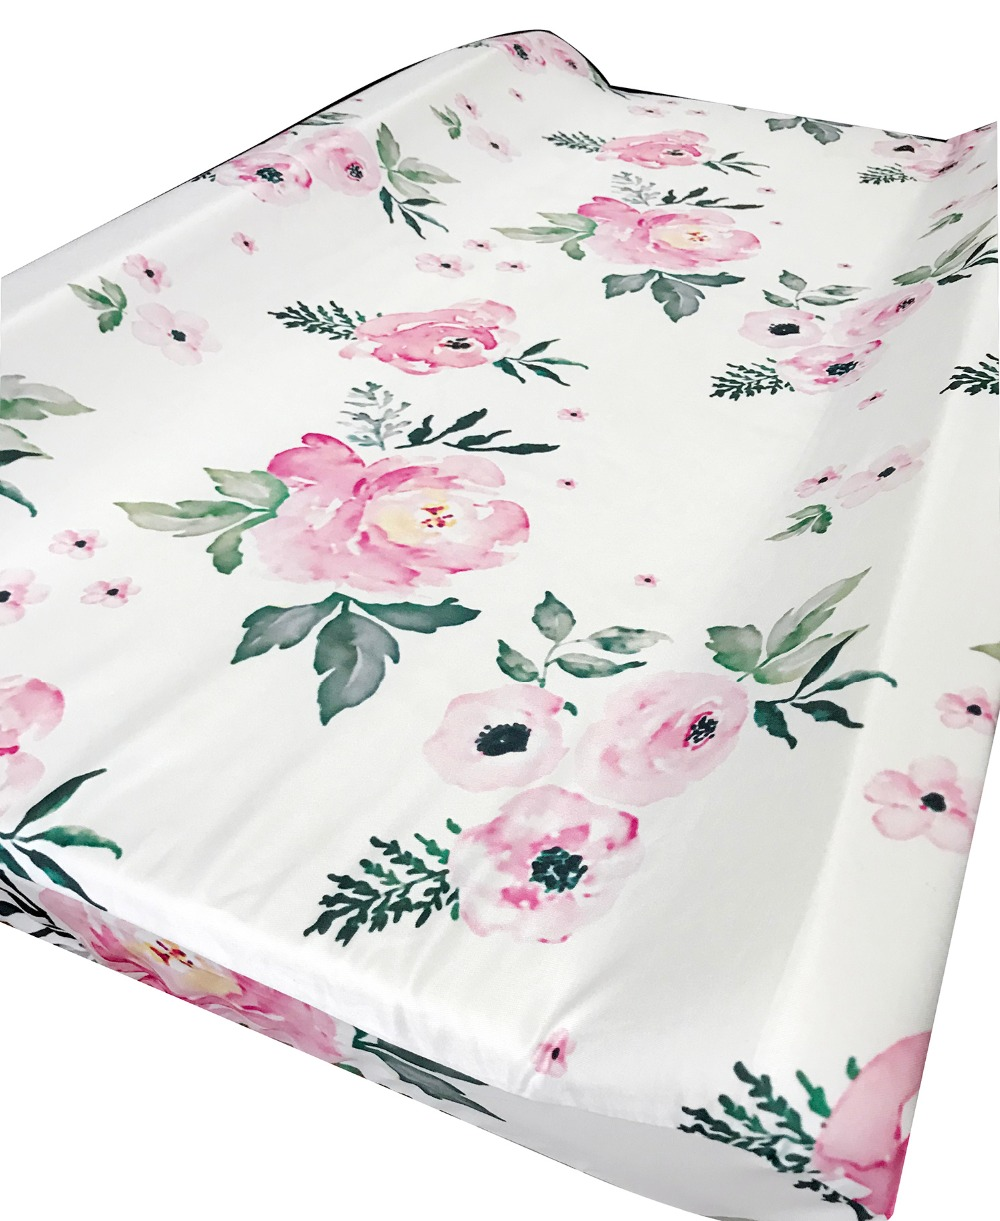 Baby Changing Pad Covers Infants Fitted Changing Table Sheets For Girls Boys    (Pink Floral)